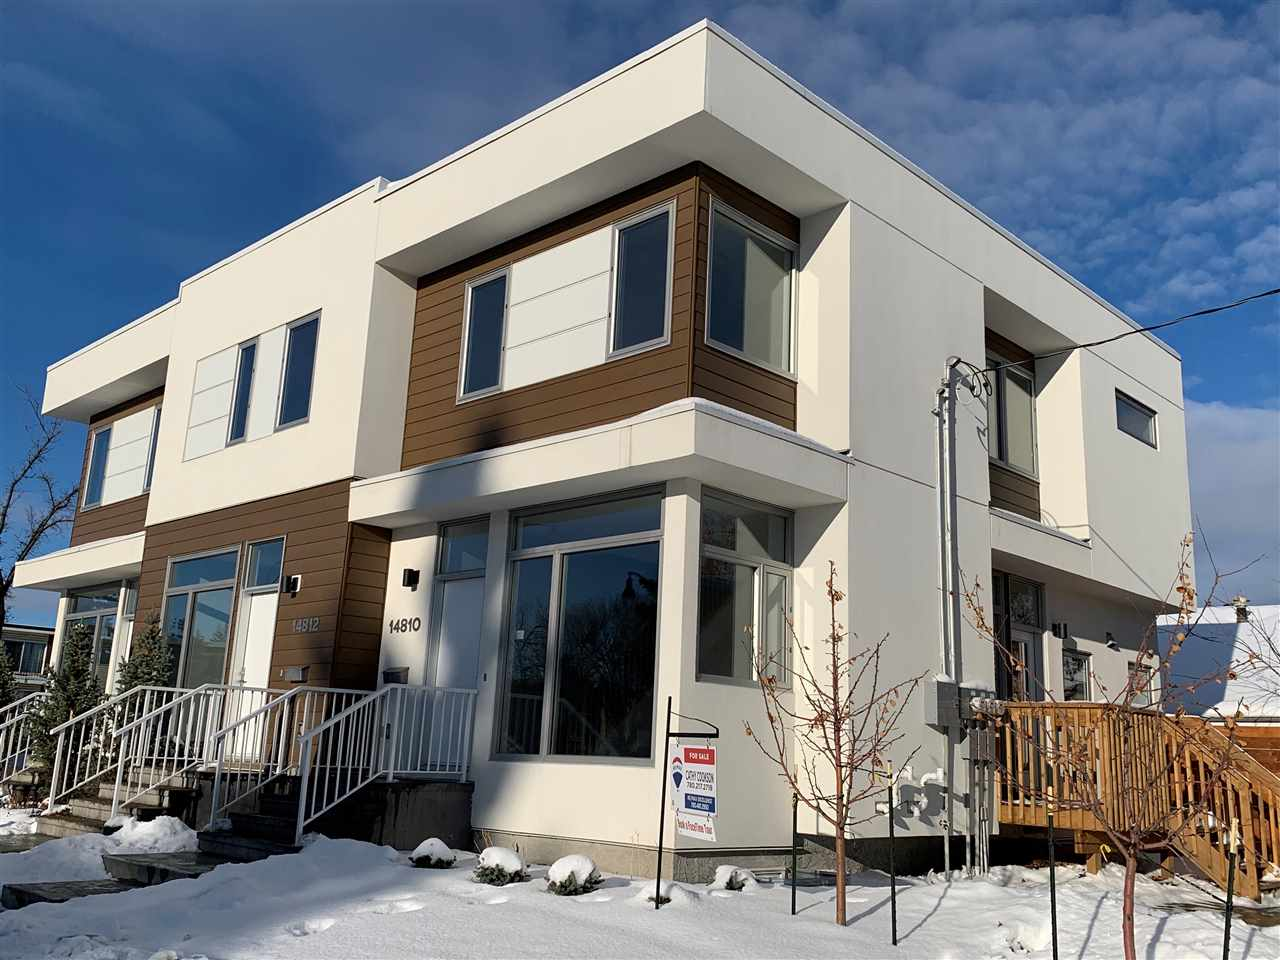 Quality Affordable Living in Crestwood! Well situated, this two-storey row house is located just 12 minutes from downtown with quick access to NAIT, Grant MacEwan, 124th St, Kingsway and WEM. Brought to you by TRITONE INC., this 4 bedroom/3.5 bath row house is built to exceptional standards. The main floor boasts a comfortable living room with an electric LED fireplace, as well as floor to ceiling windows showcasing an abundance of natural light. There is a modern kitchen with granite countertops and stainless steel appliances, a dining area connecting onto the patio, and a half bath and laundry to complete the main floor. The second floor includes a master bedroom with full ensuite and generous closet space, two additional bedrooms and full bath. The basement includes a family room, spacious bedroom and full bath. Each unit has its own detached garage, and the property is professionally landscaped with fencing and privacy screens